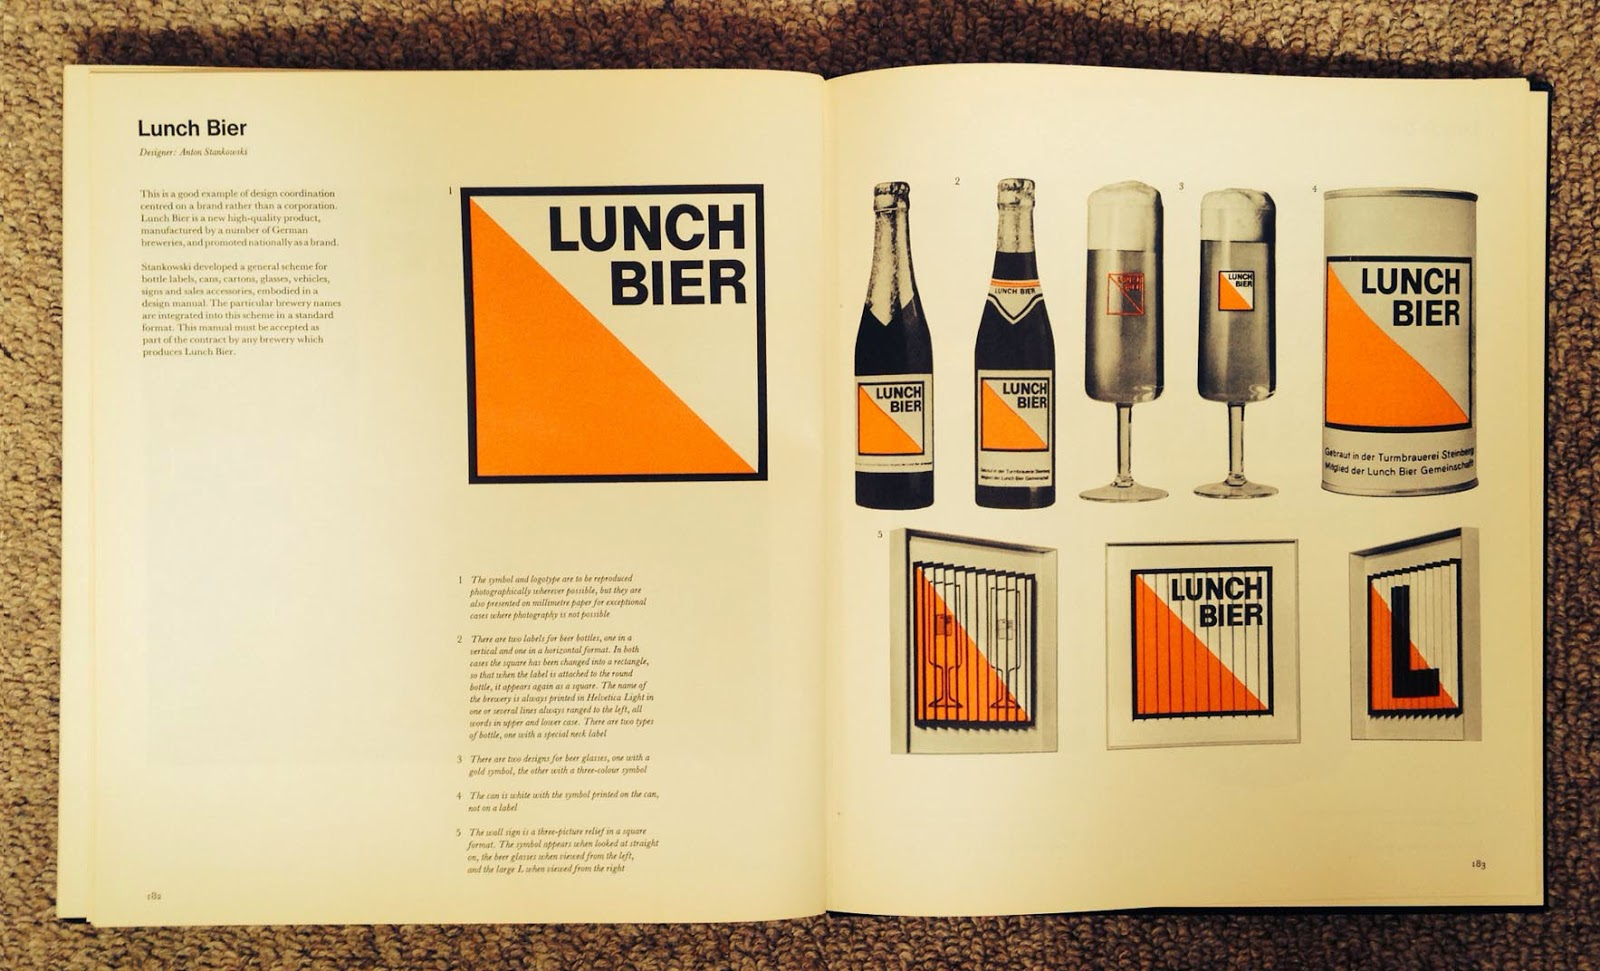 Lunch Bier logo and Bottles